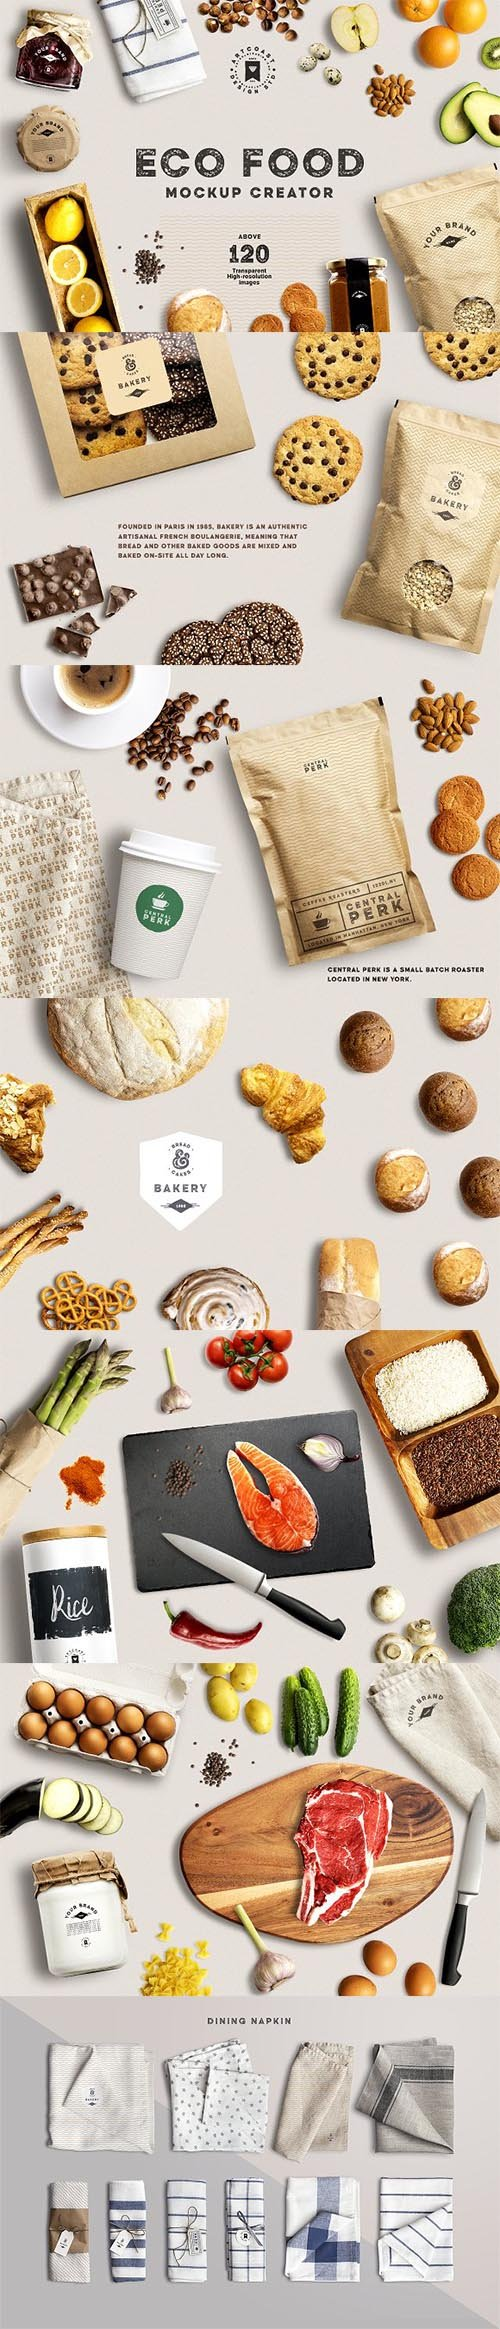 Eco Food Mockup Creator 1515954